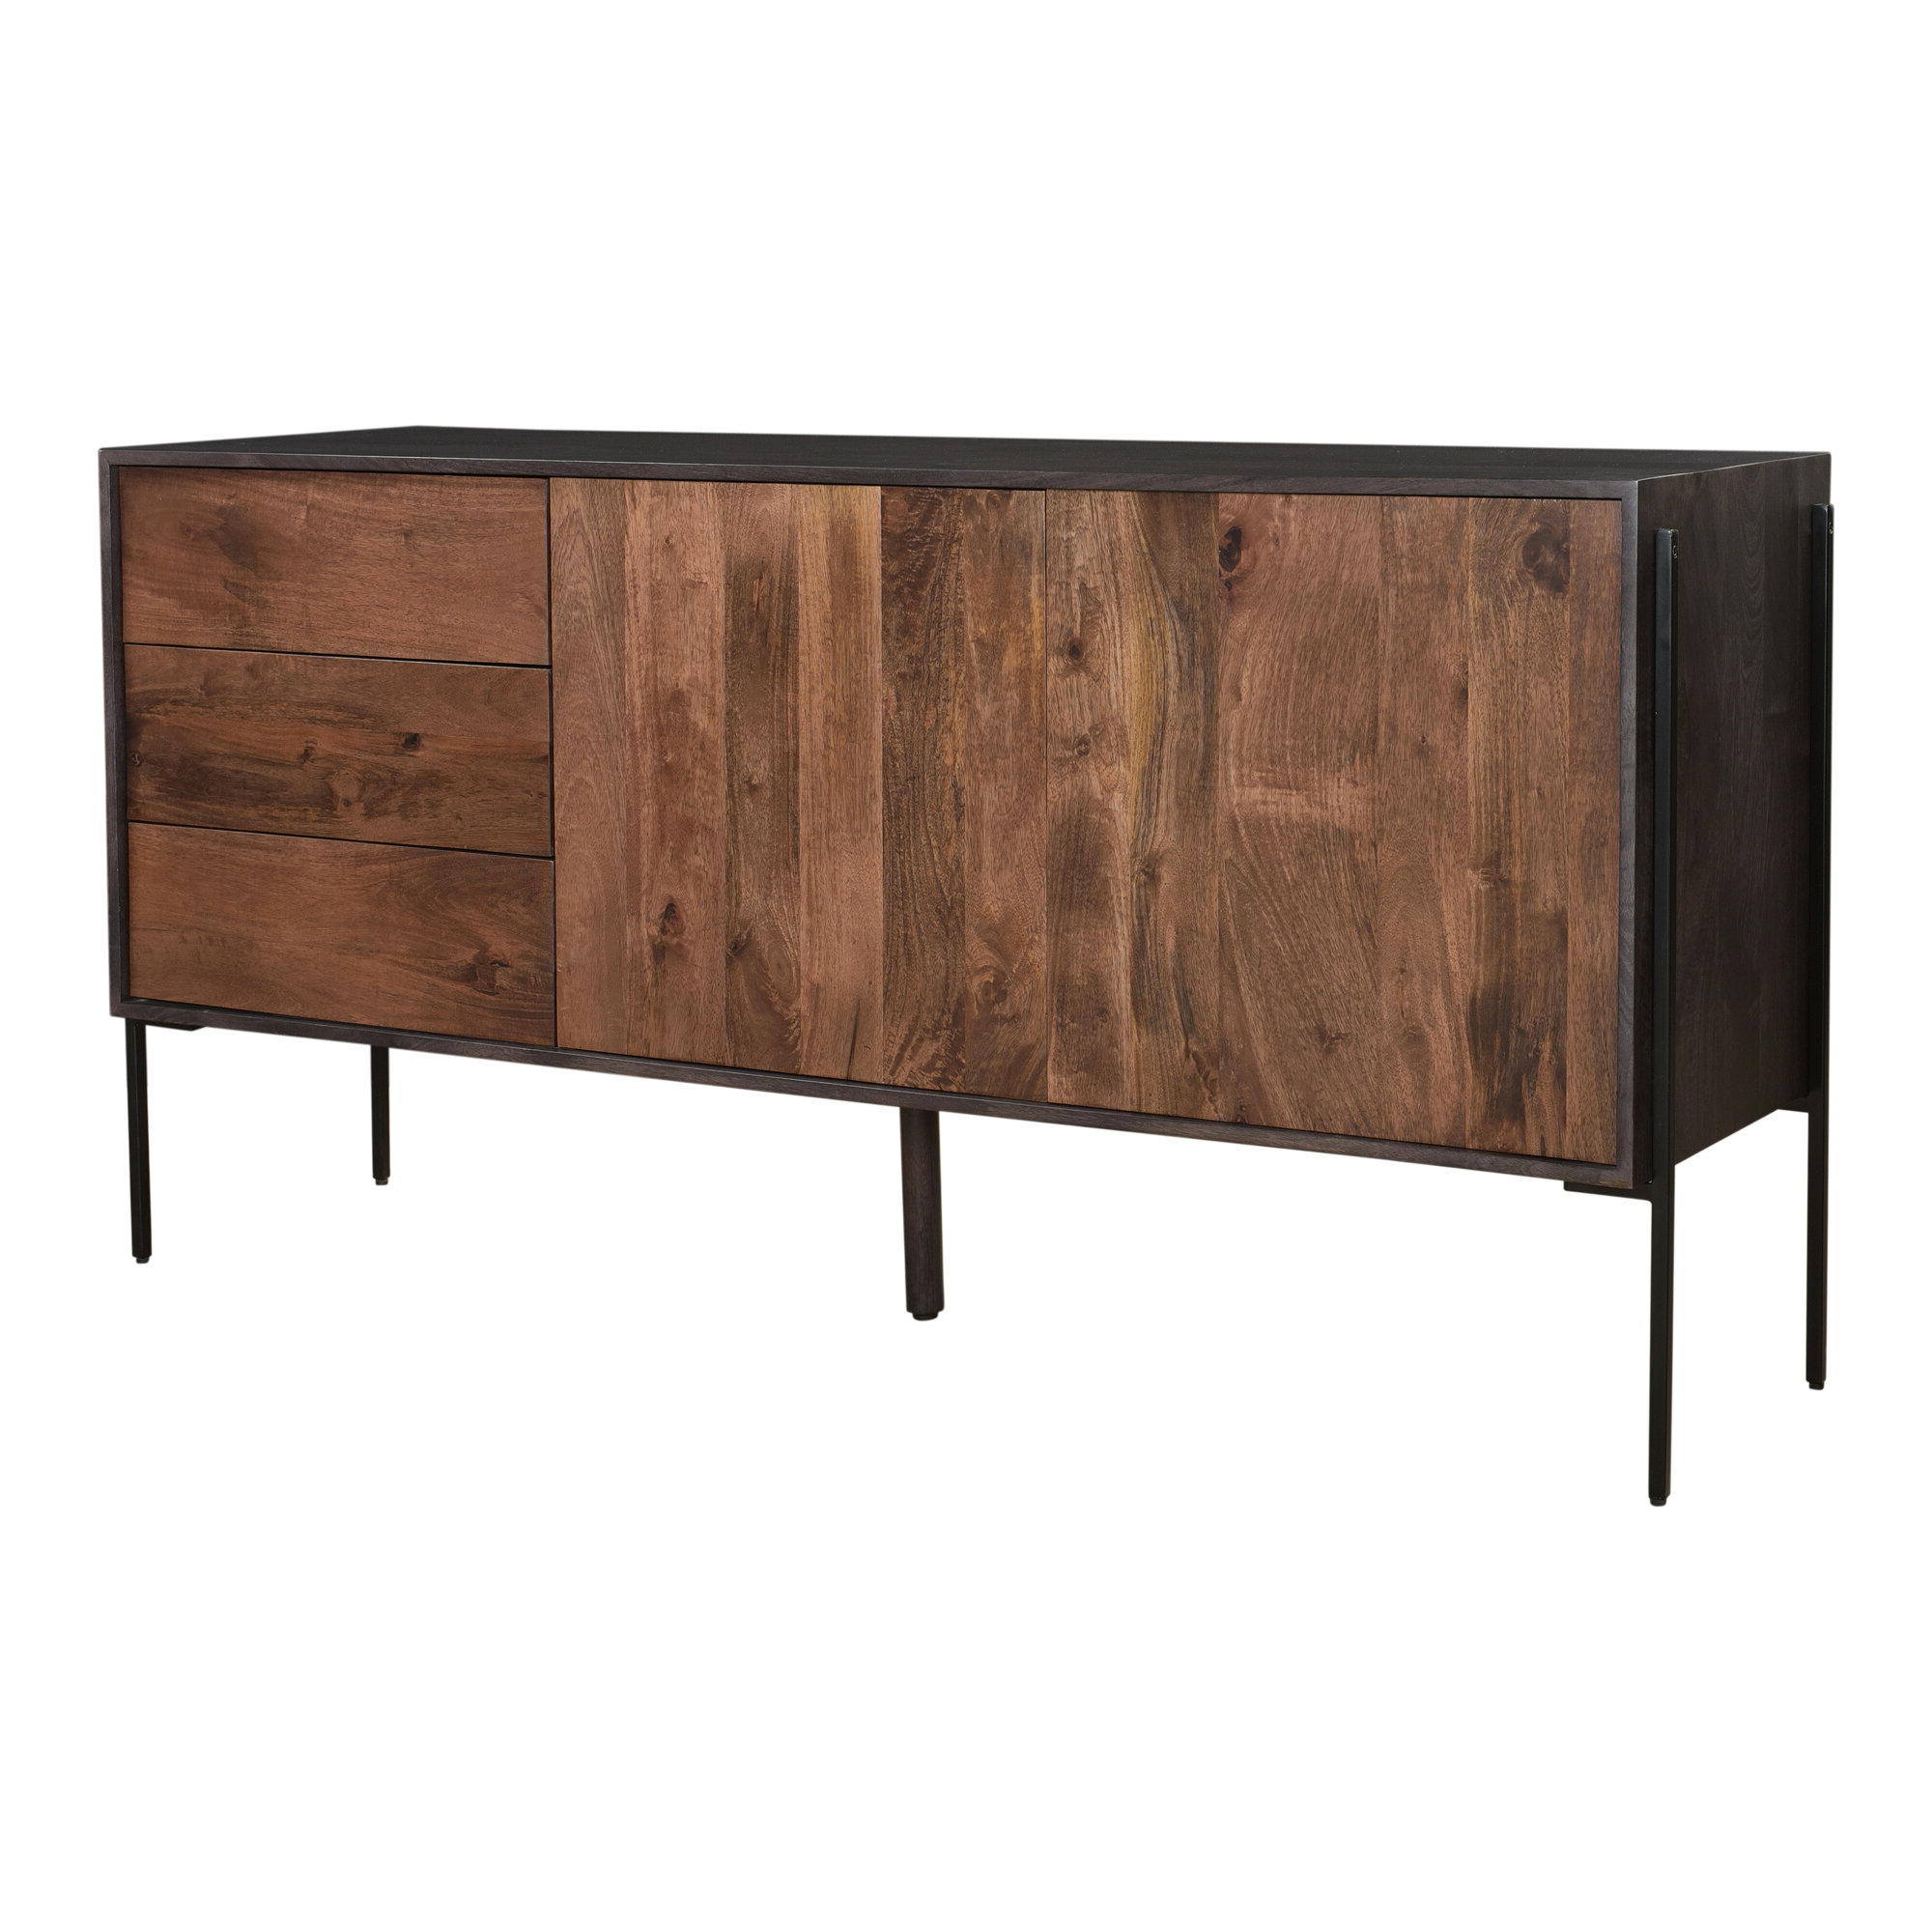 Widely Used Details About Foundry Select Bloch Sideboard Regarding Sideboards By Foundry Select (View 20 of 20)